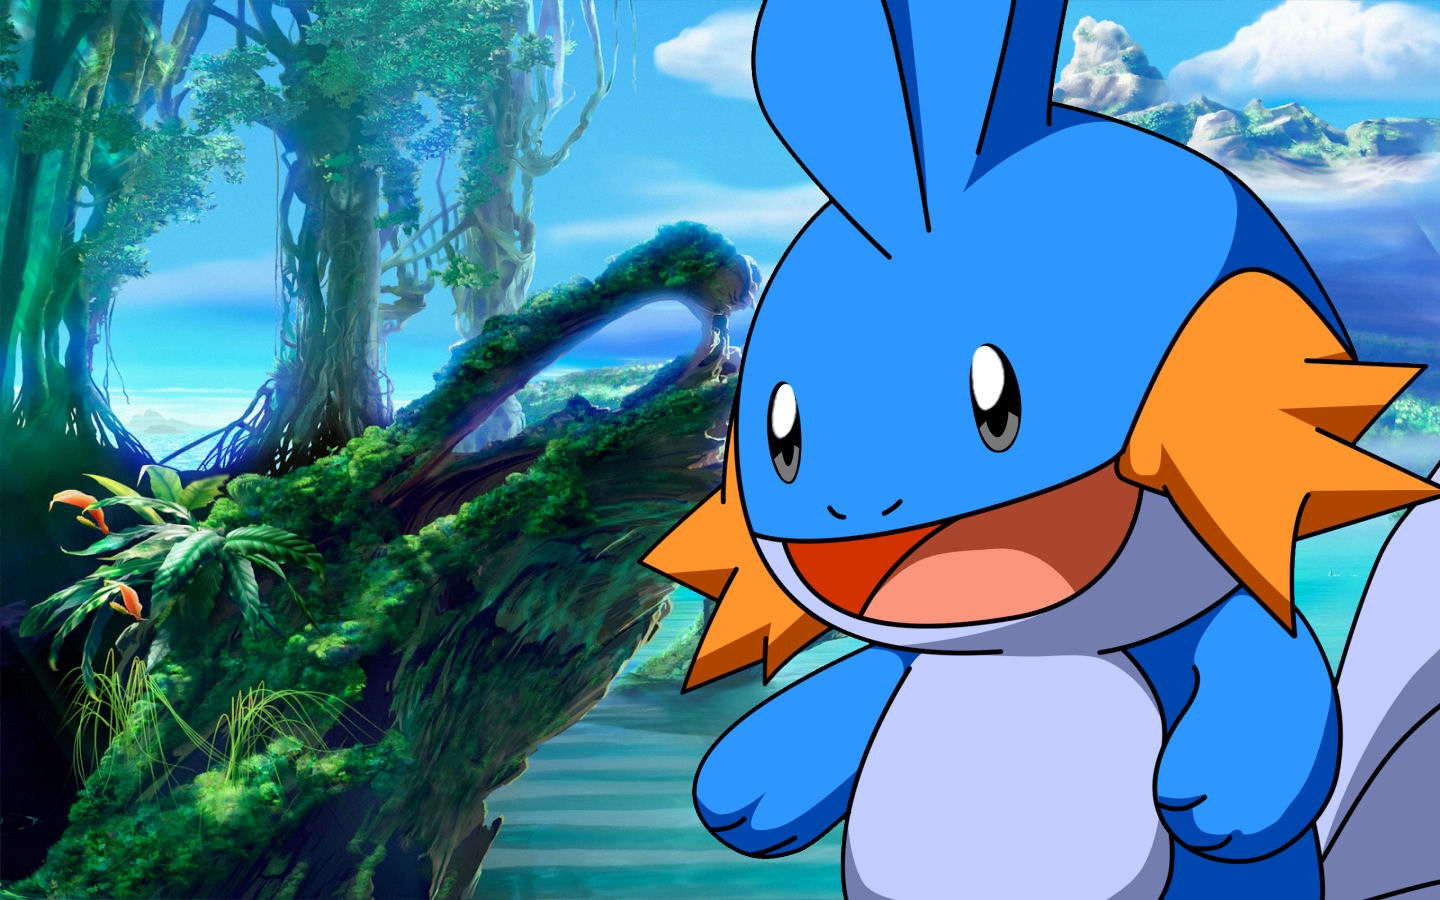 257887 Kb Download Original Mudkip Wallpaper Fond D écran